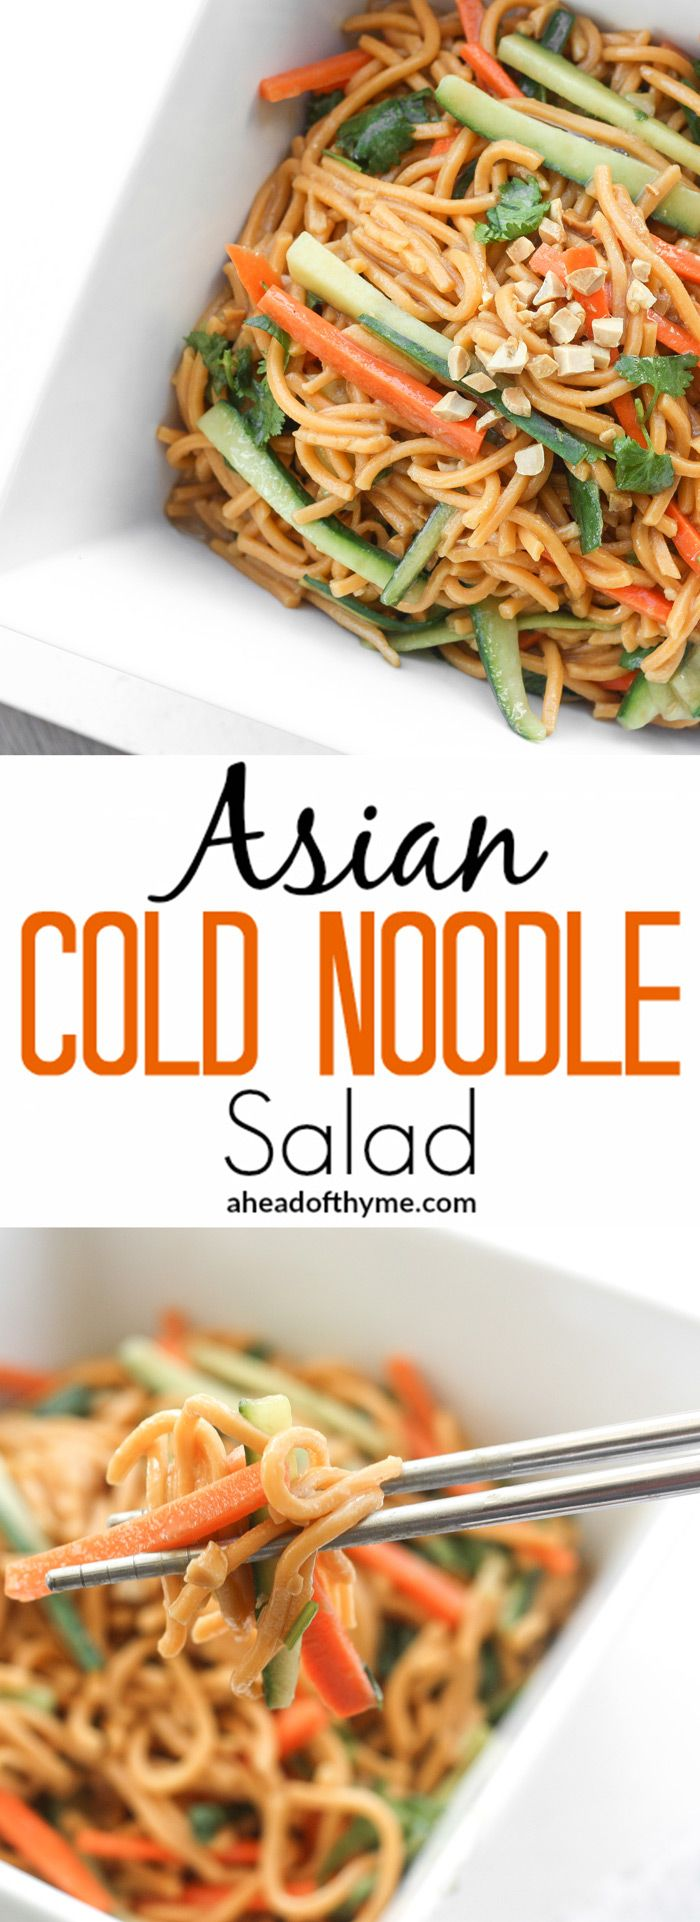 Asian Cold Noodle Salad: Nothing screams summer more than a crispy, crunchy…